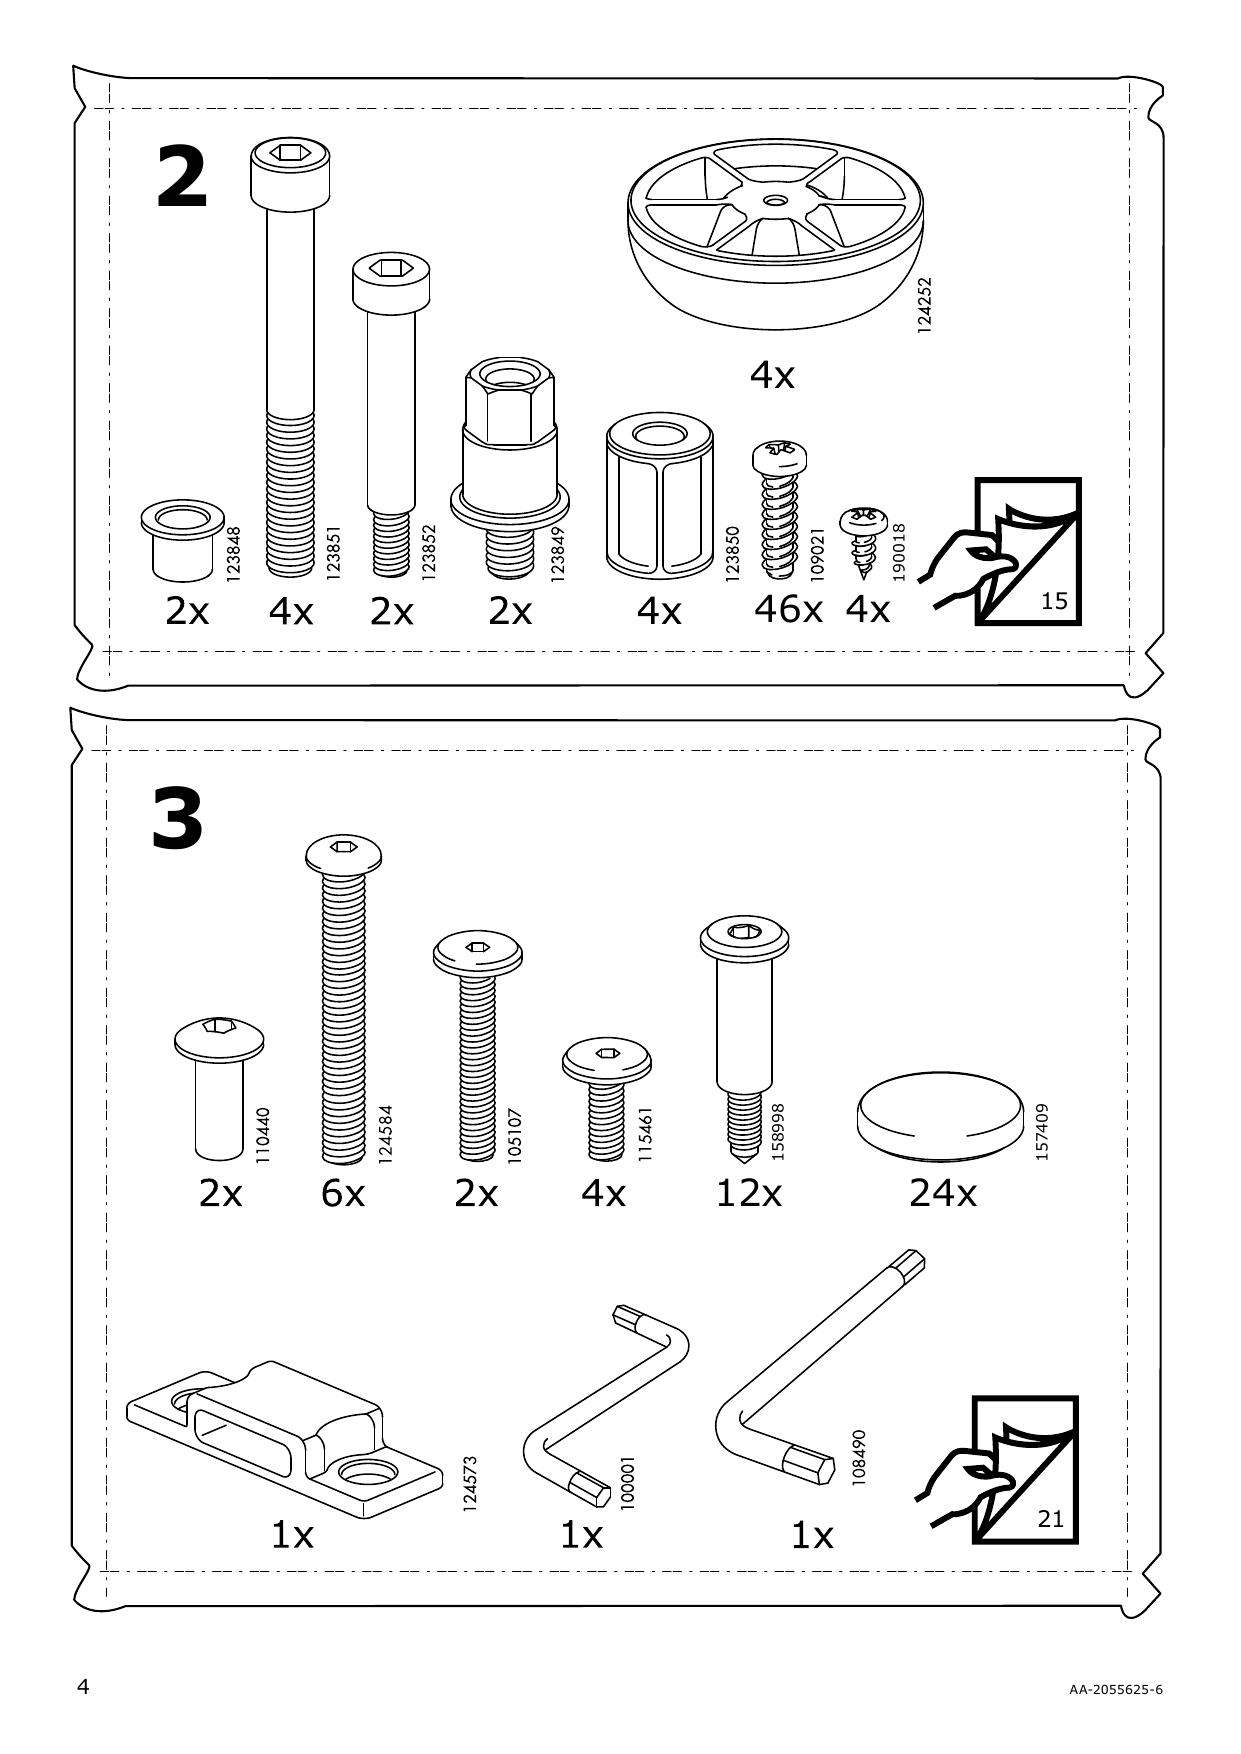 IKEA MALM Storage bed Assembly Instruction - 4